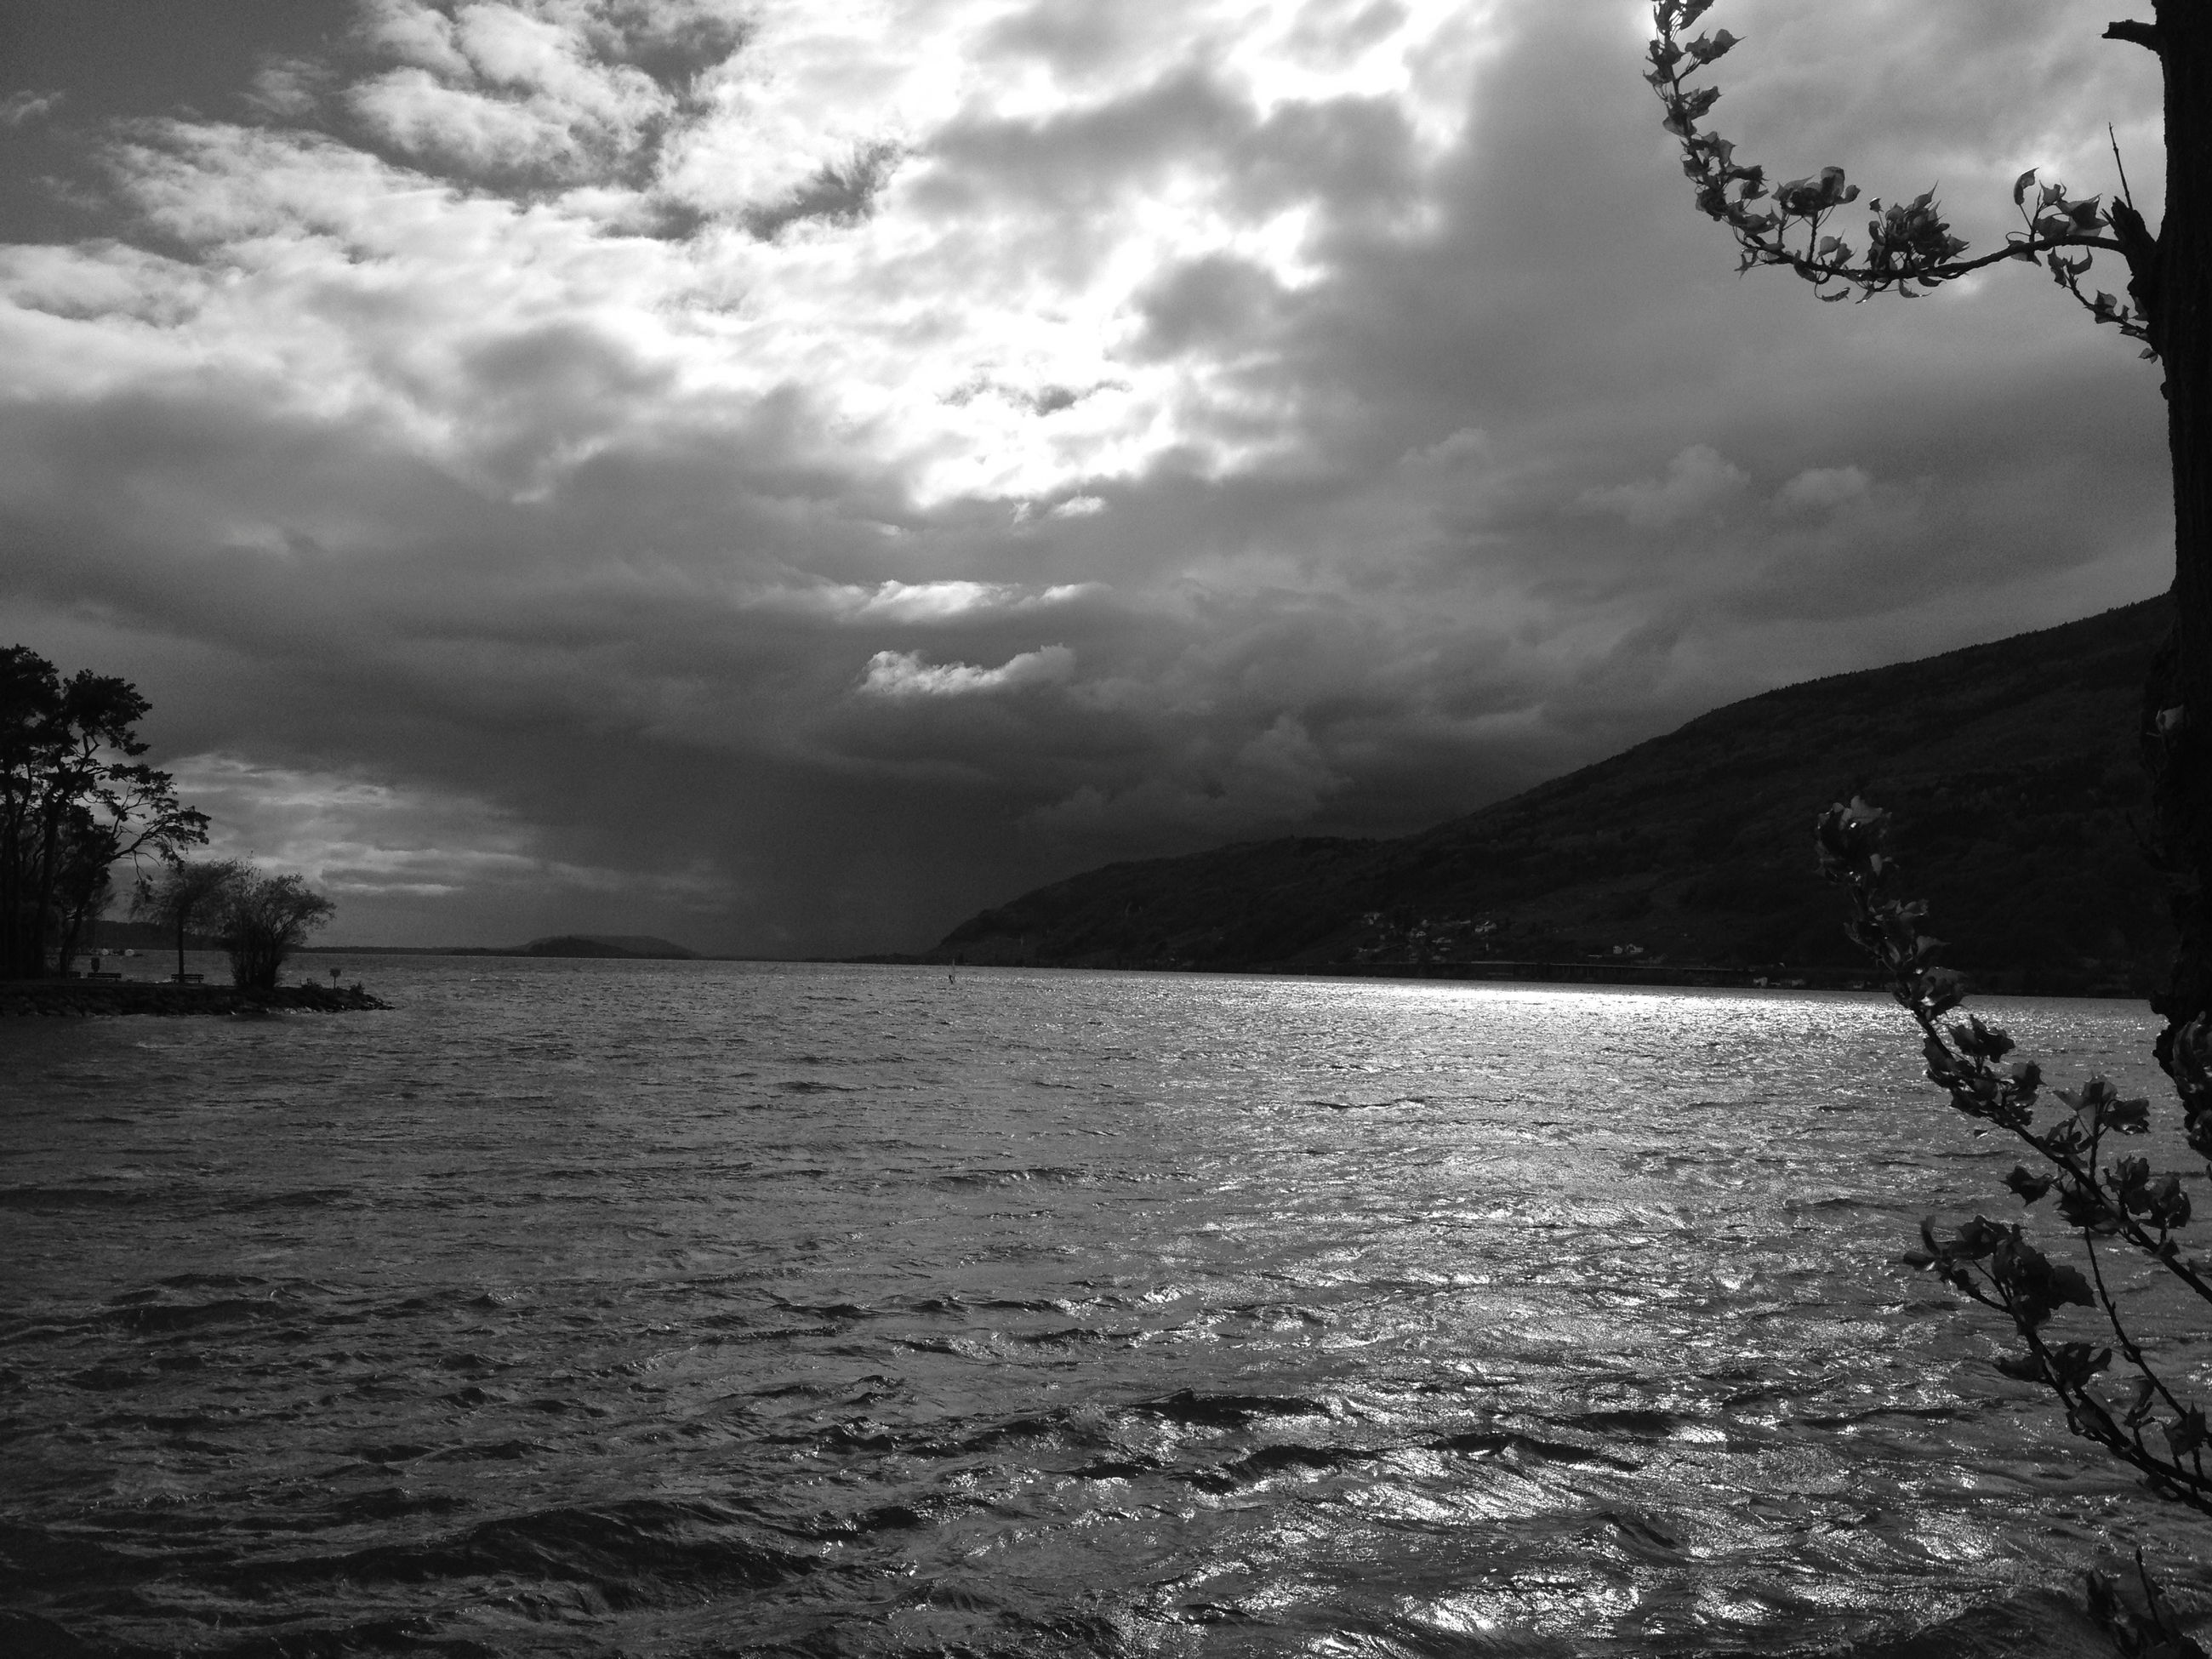 cloud - sky, sky, water, beauty in nature, sea, scenics - nature, tranquility, tranquil scene, nature, waterfront, no people, mountain, outdoors, day, horizon, environment, overcast, storm, ominous